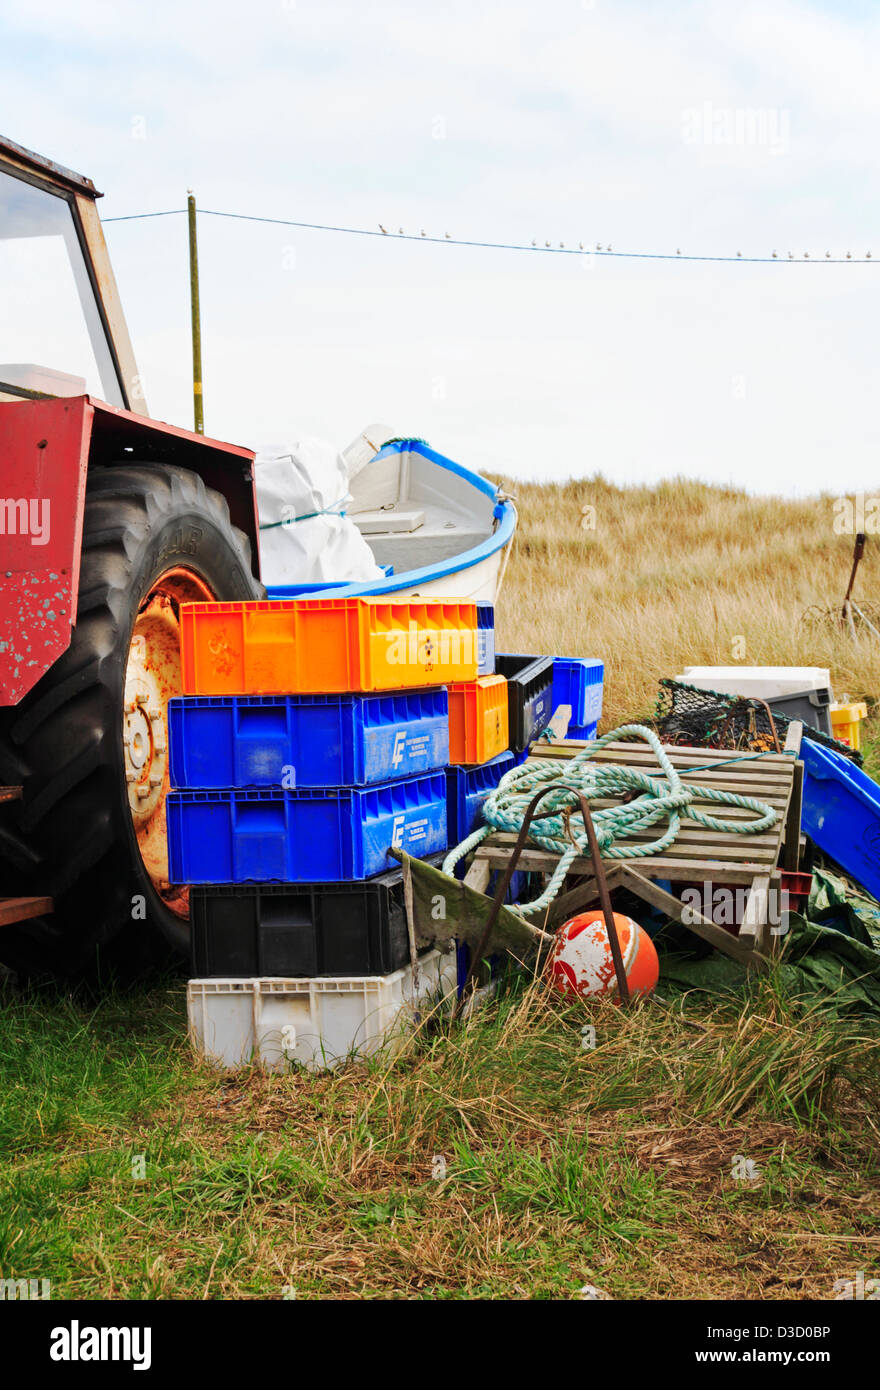 A view of a tractor, boat and equipment for an inshore fisherman at Caister-on-Sea, Norfolk, England, United Kingdom. Stock Photo